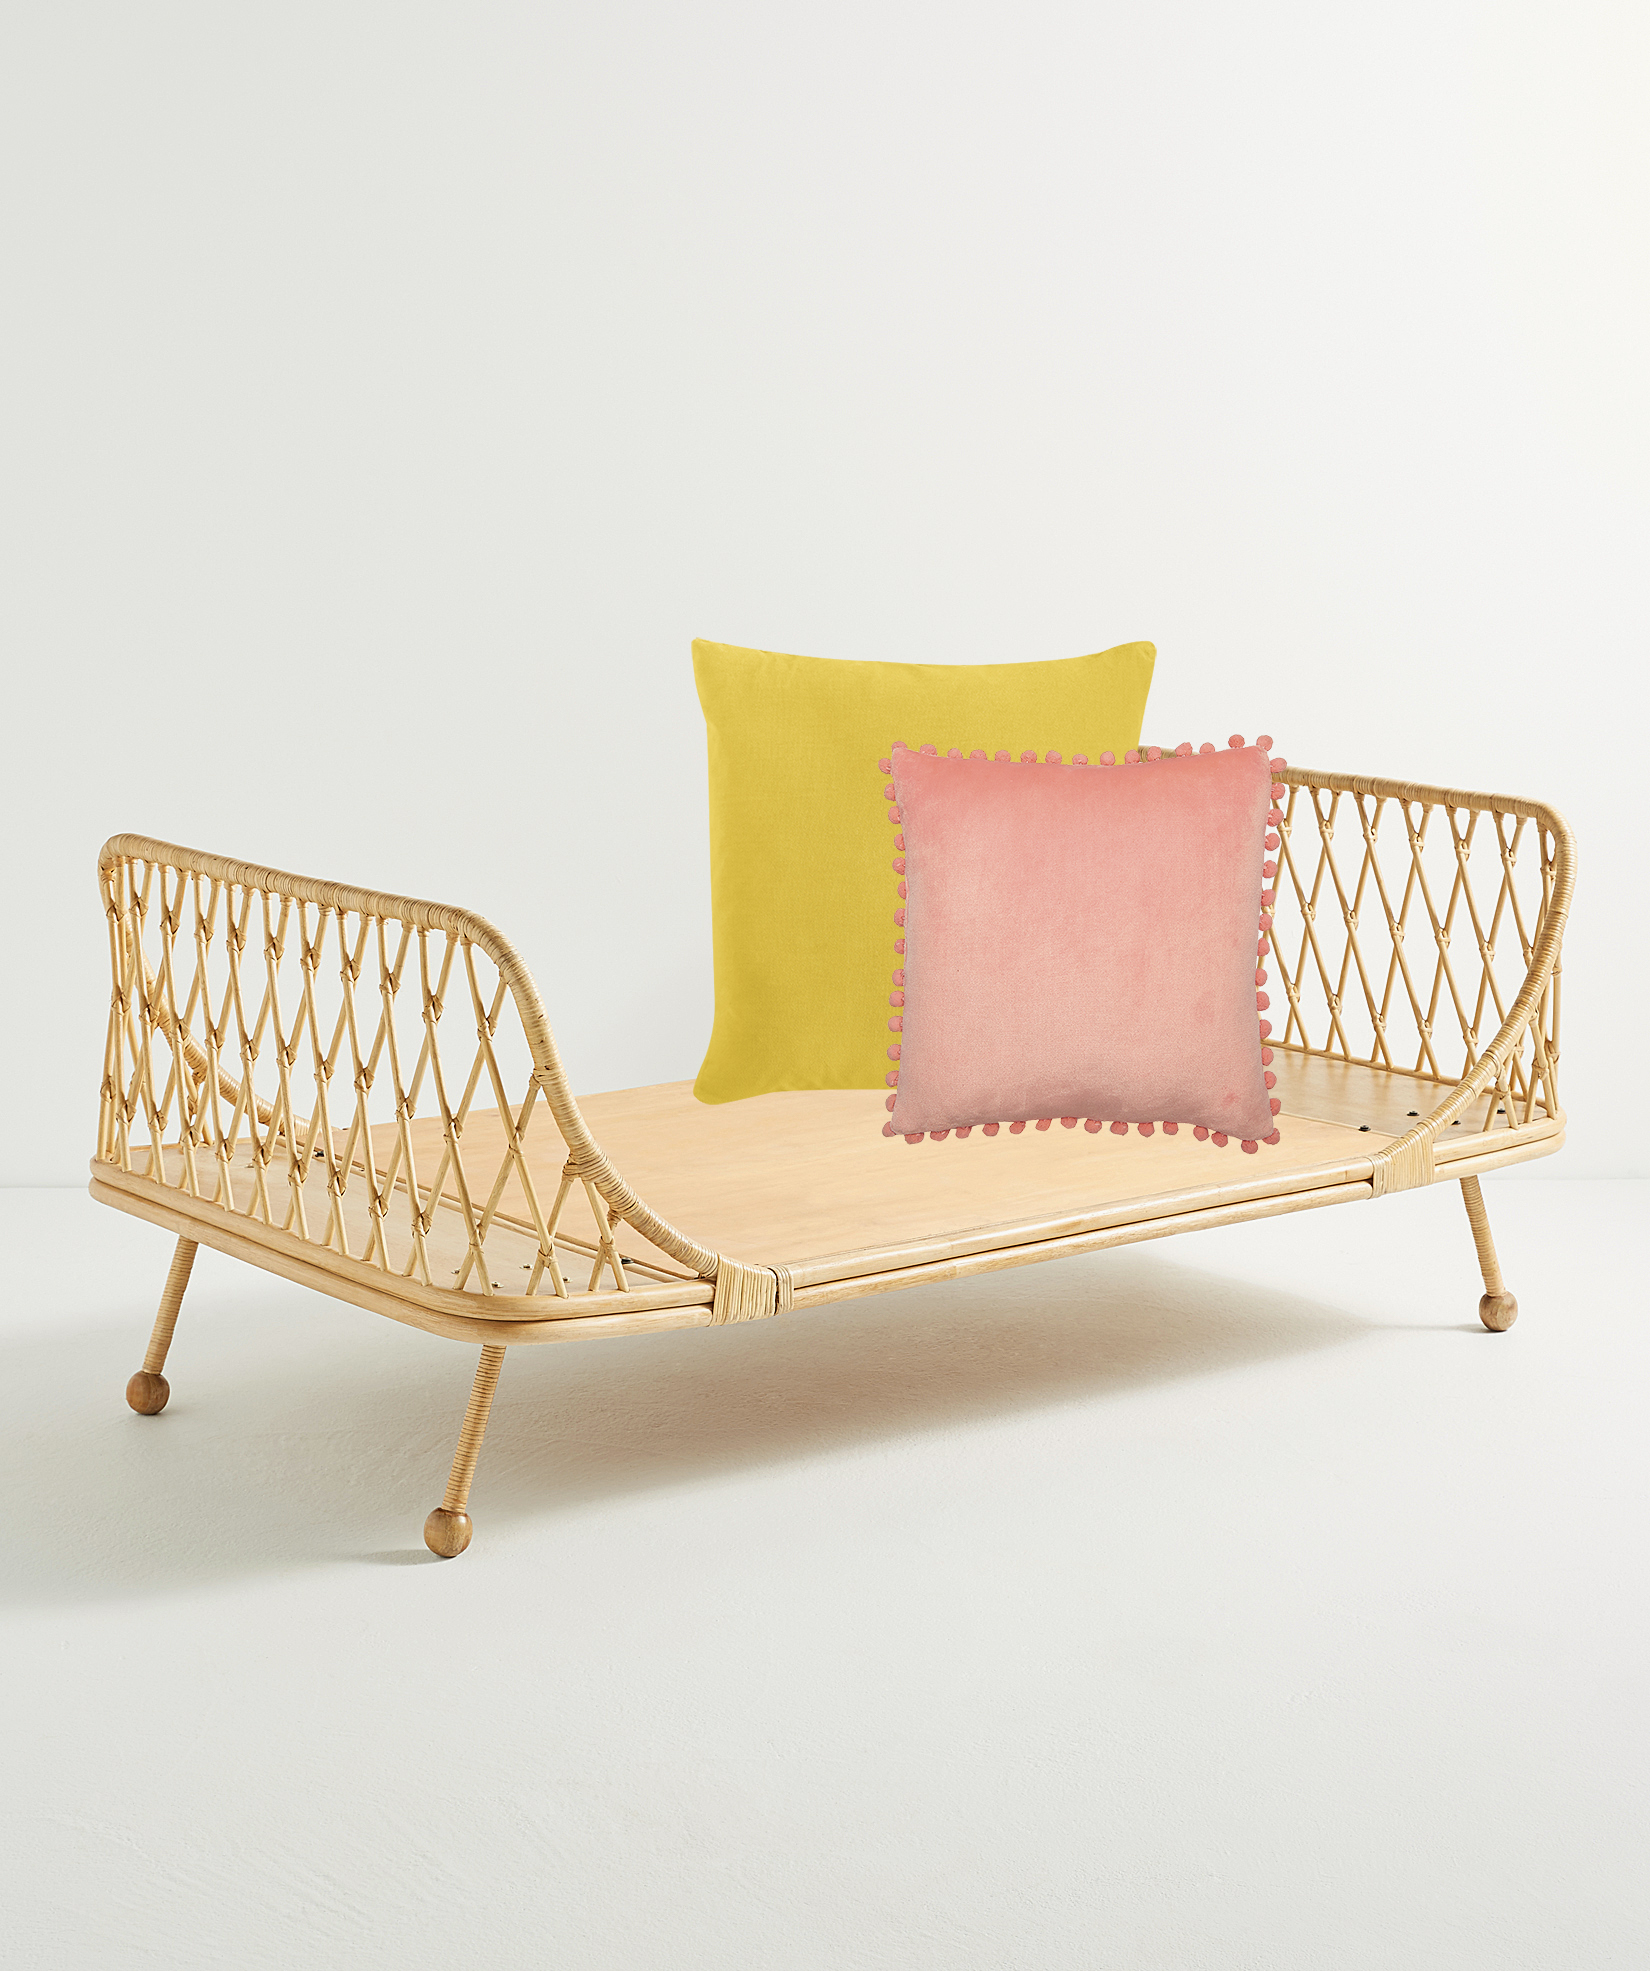 Antique Pan Rattan Daybed with Yellow Velvet Throw Pillow and Pink Pom Pom Throw Pillow